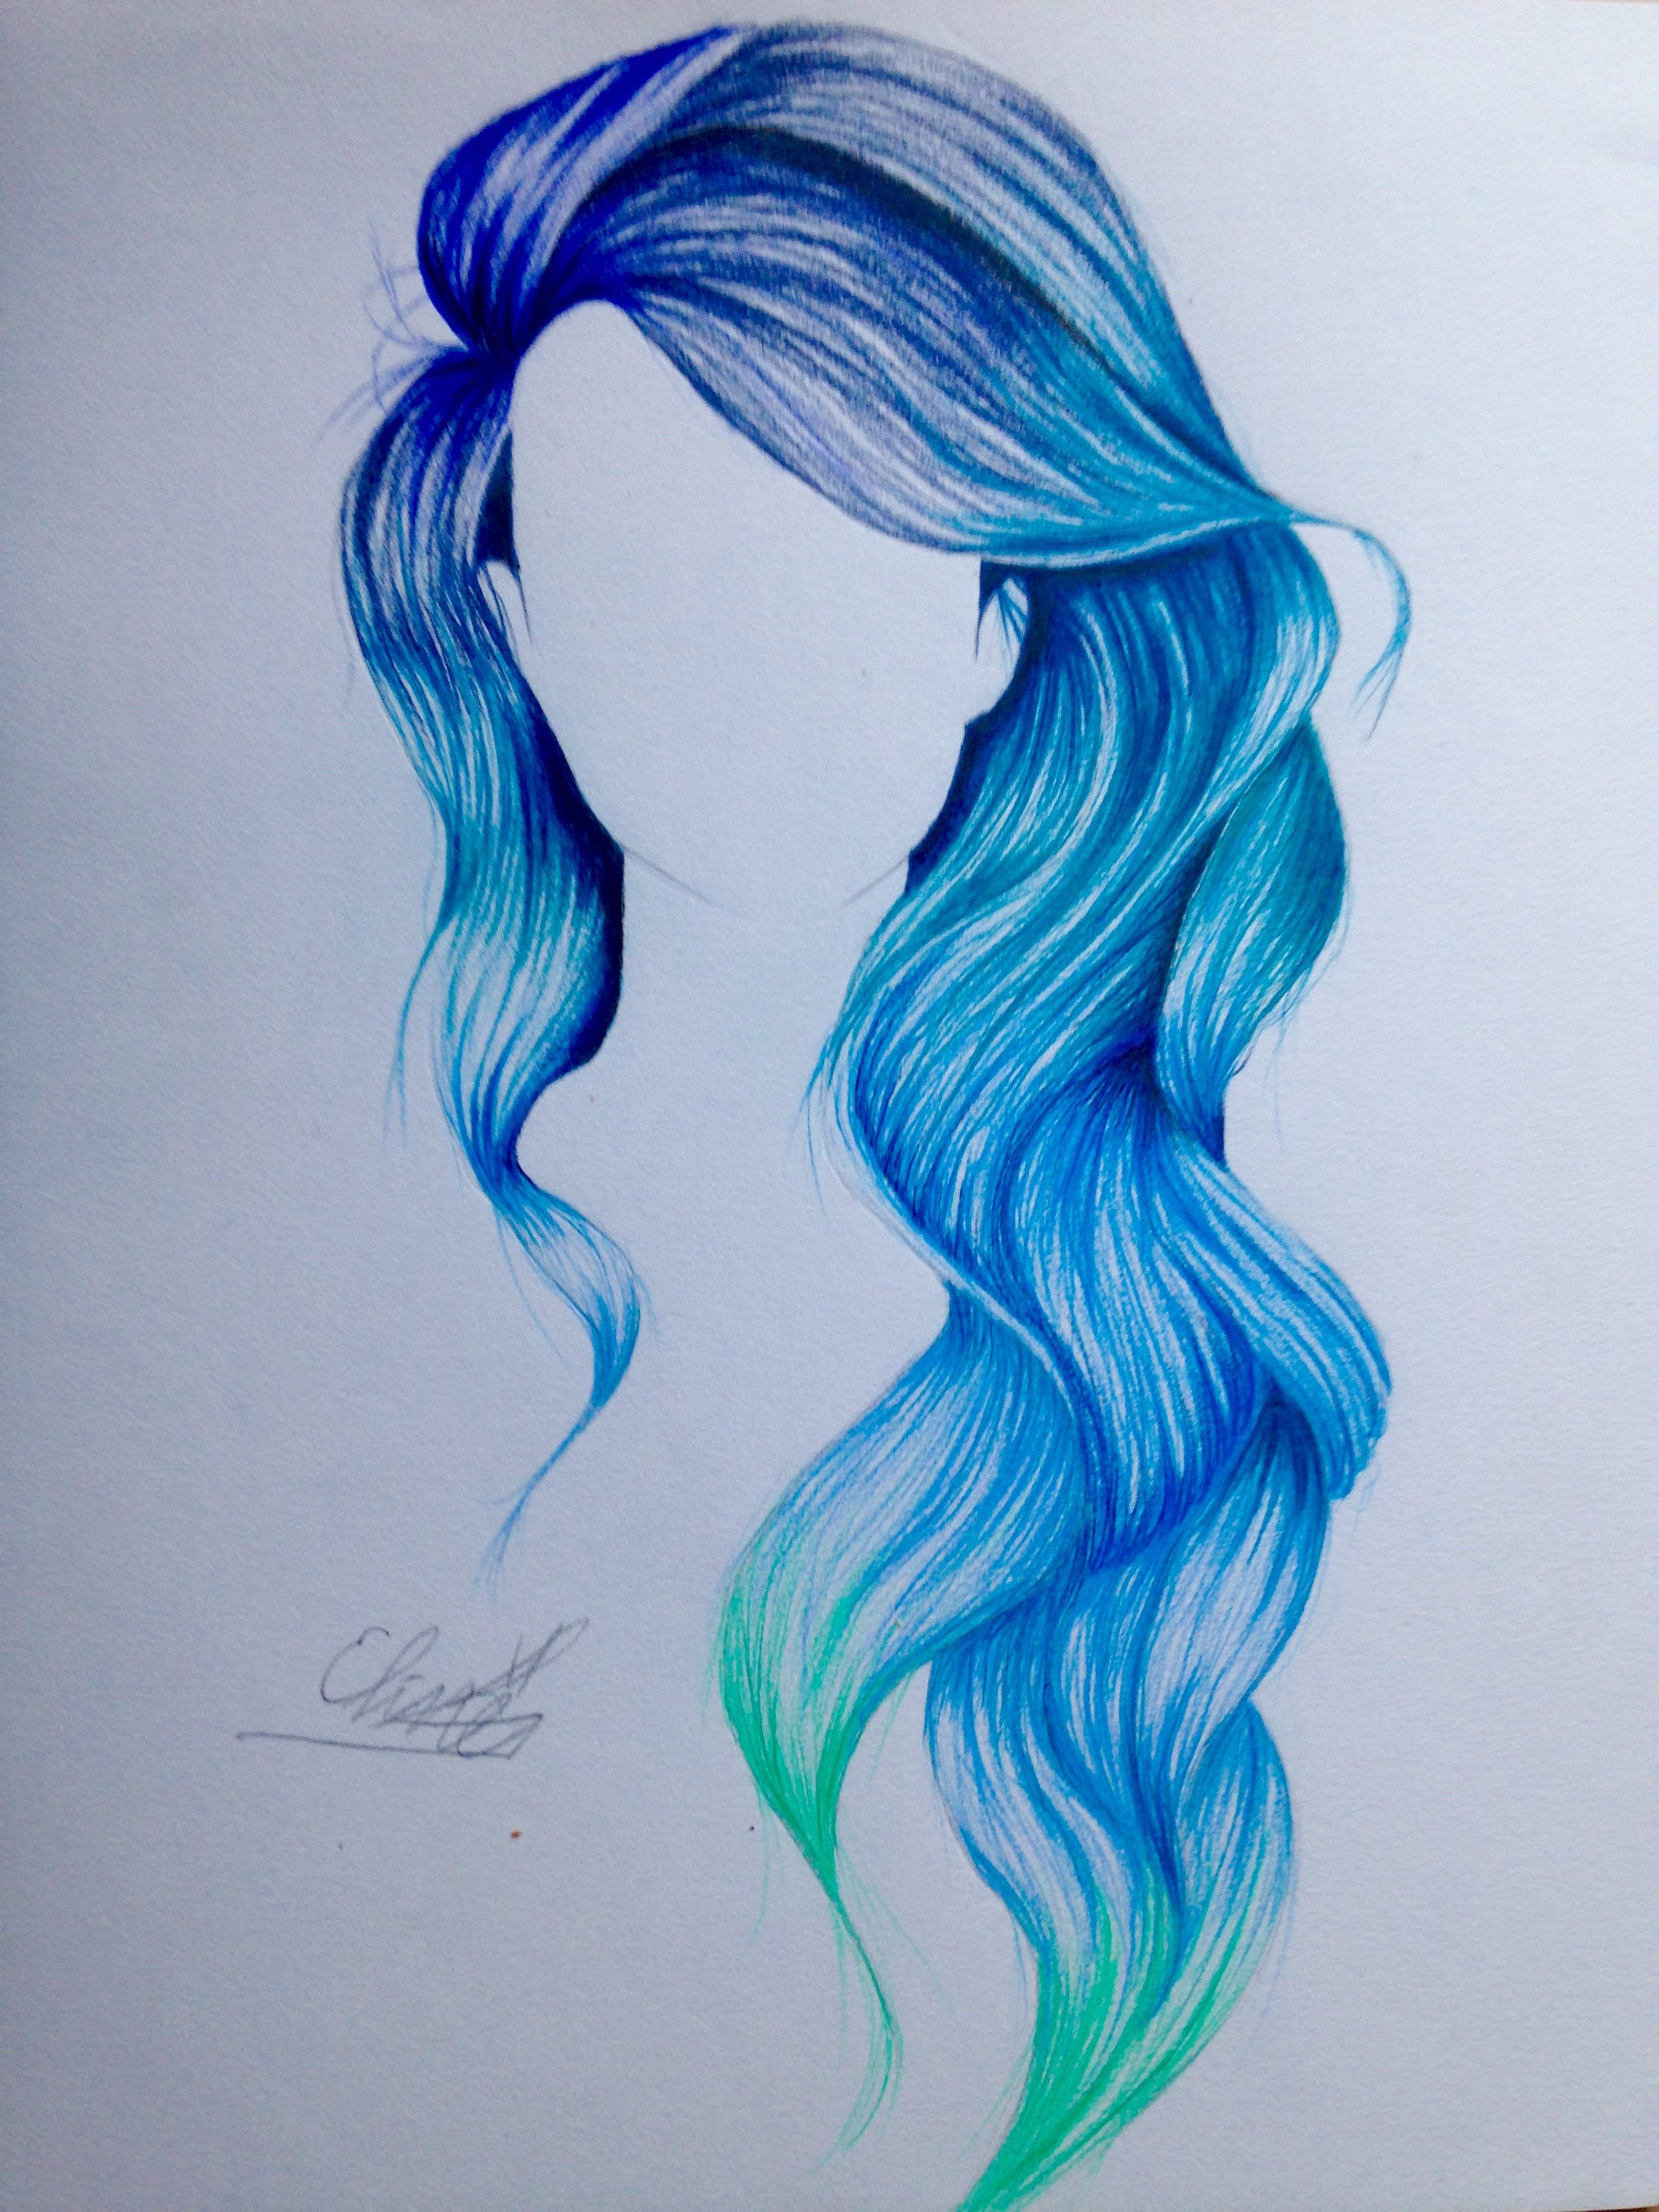 Drawn rainbow fun Ombré hair My fun much